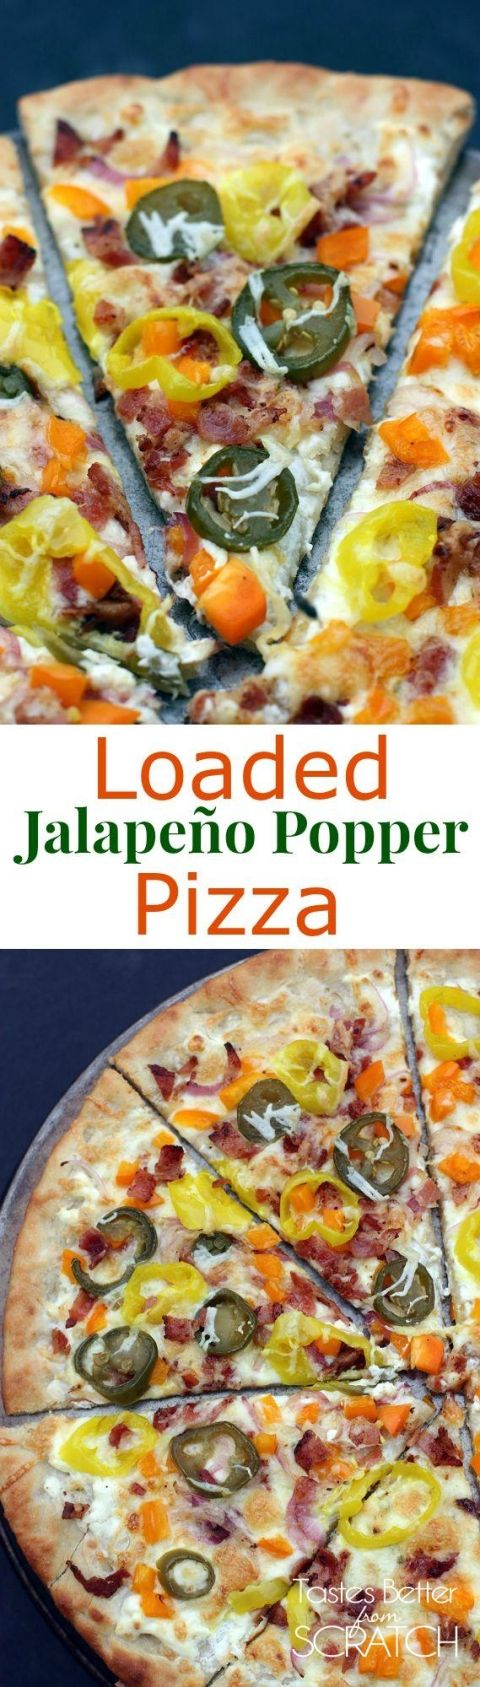 ... Popper Pizza | Recipe | Pizza, Jalapeno poppers and Pizza recipes